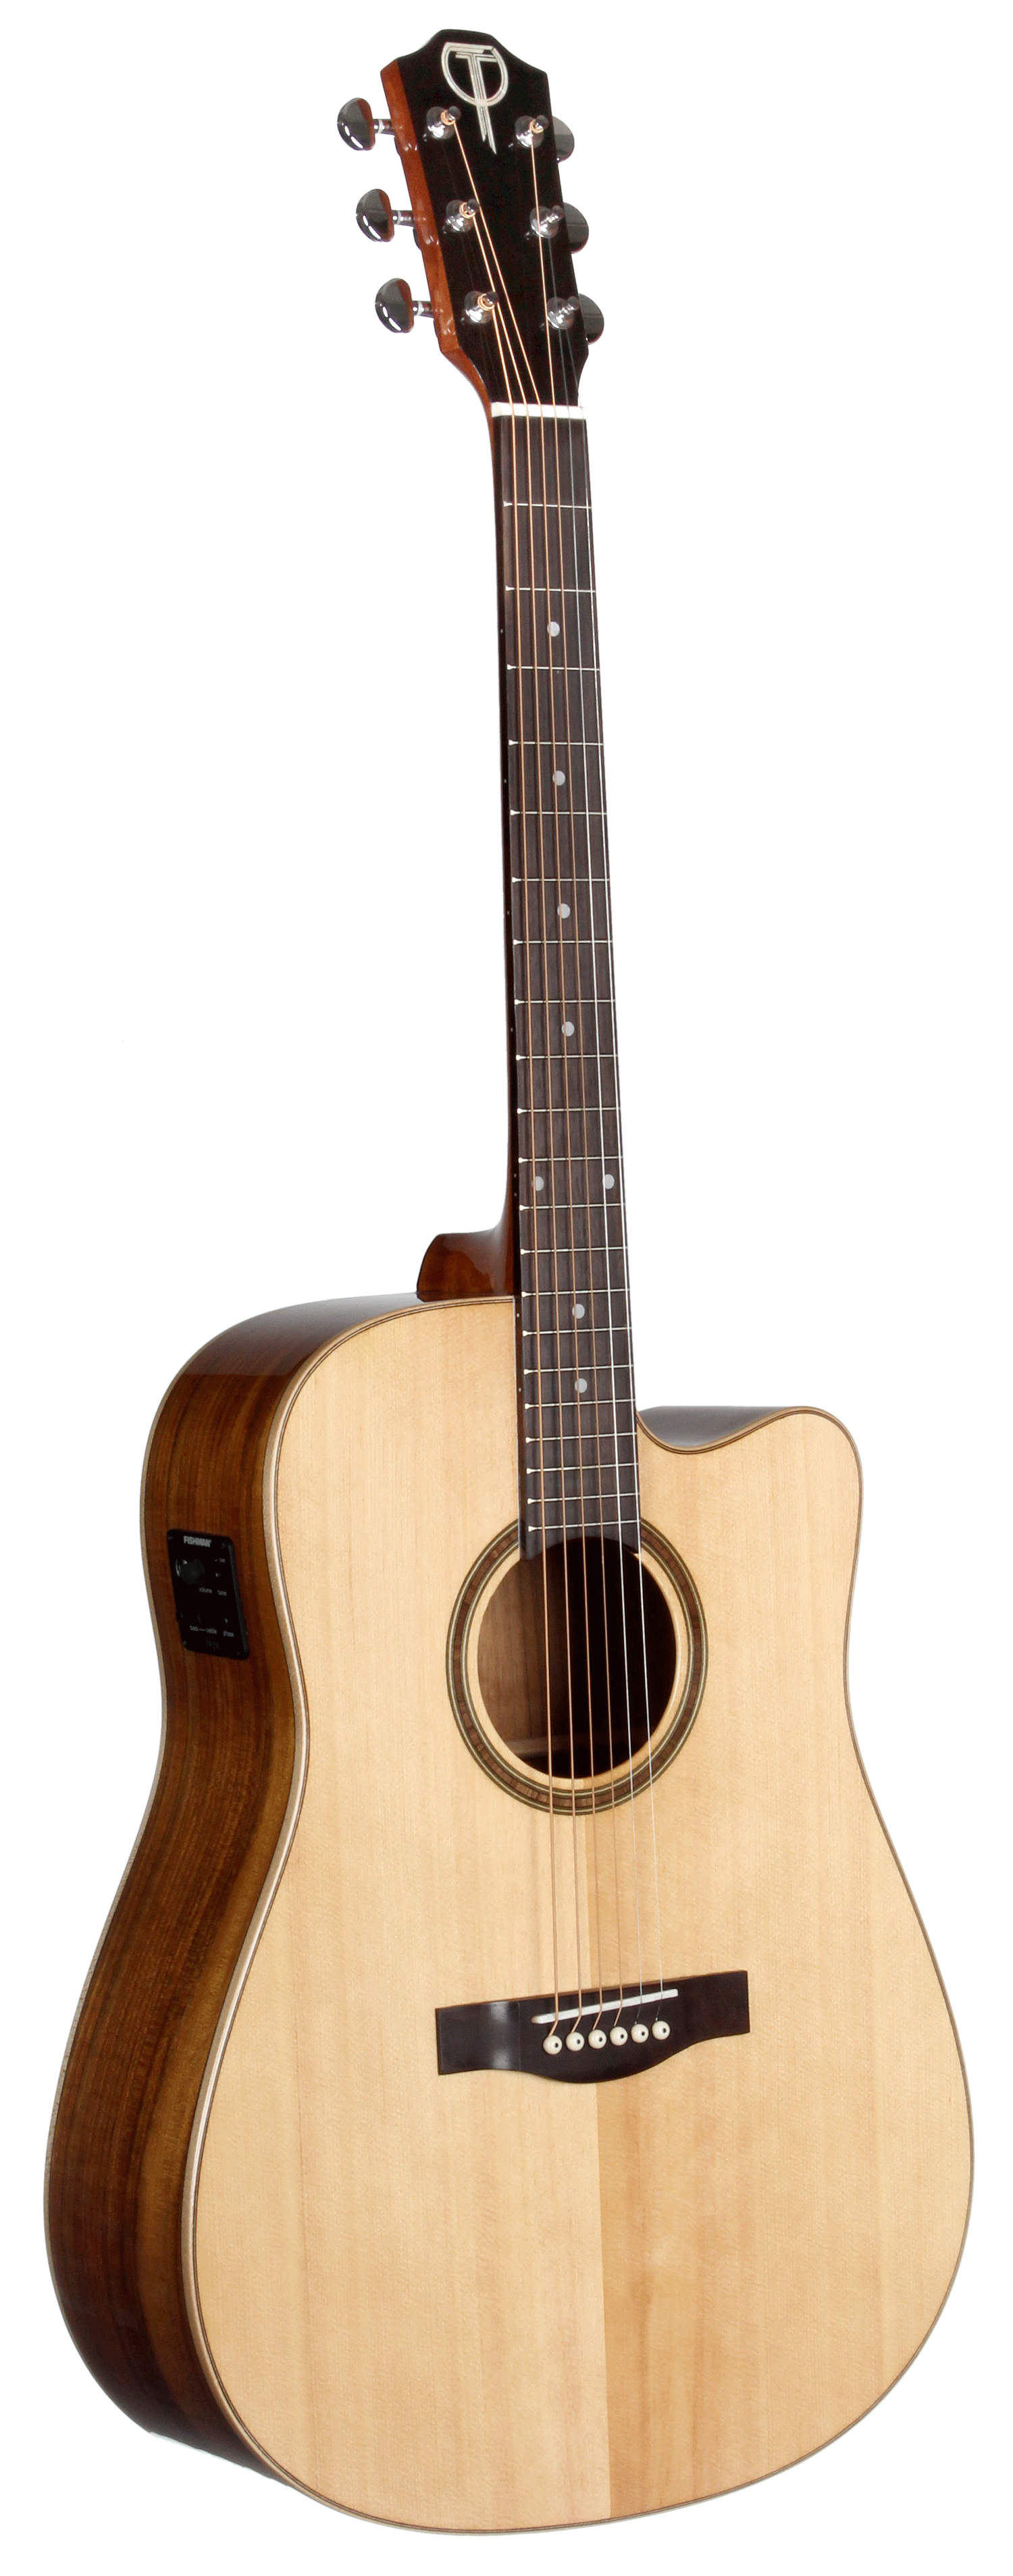 1500x3814 Sts110cent Cutaway With Electronics Guitars